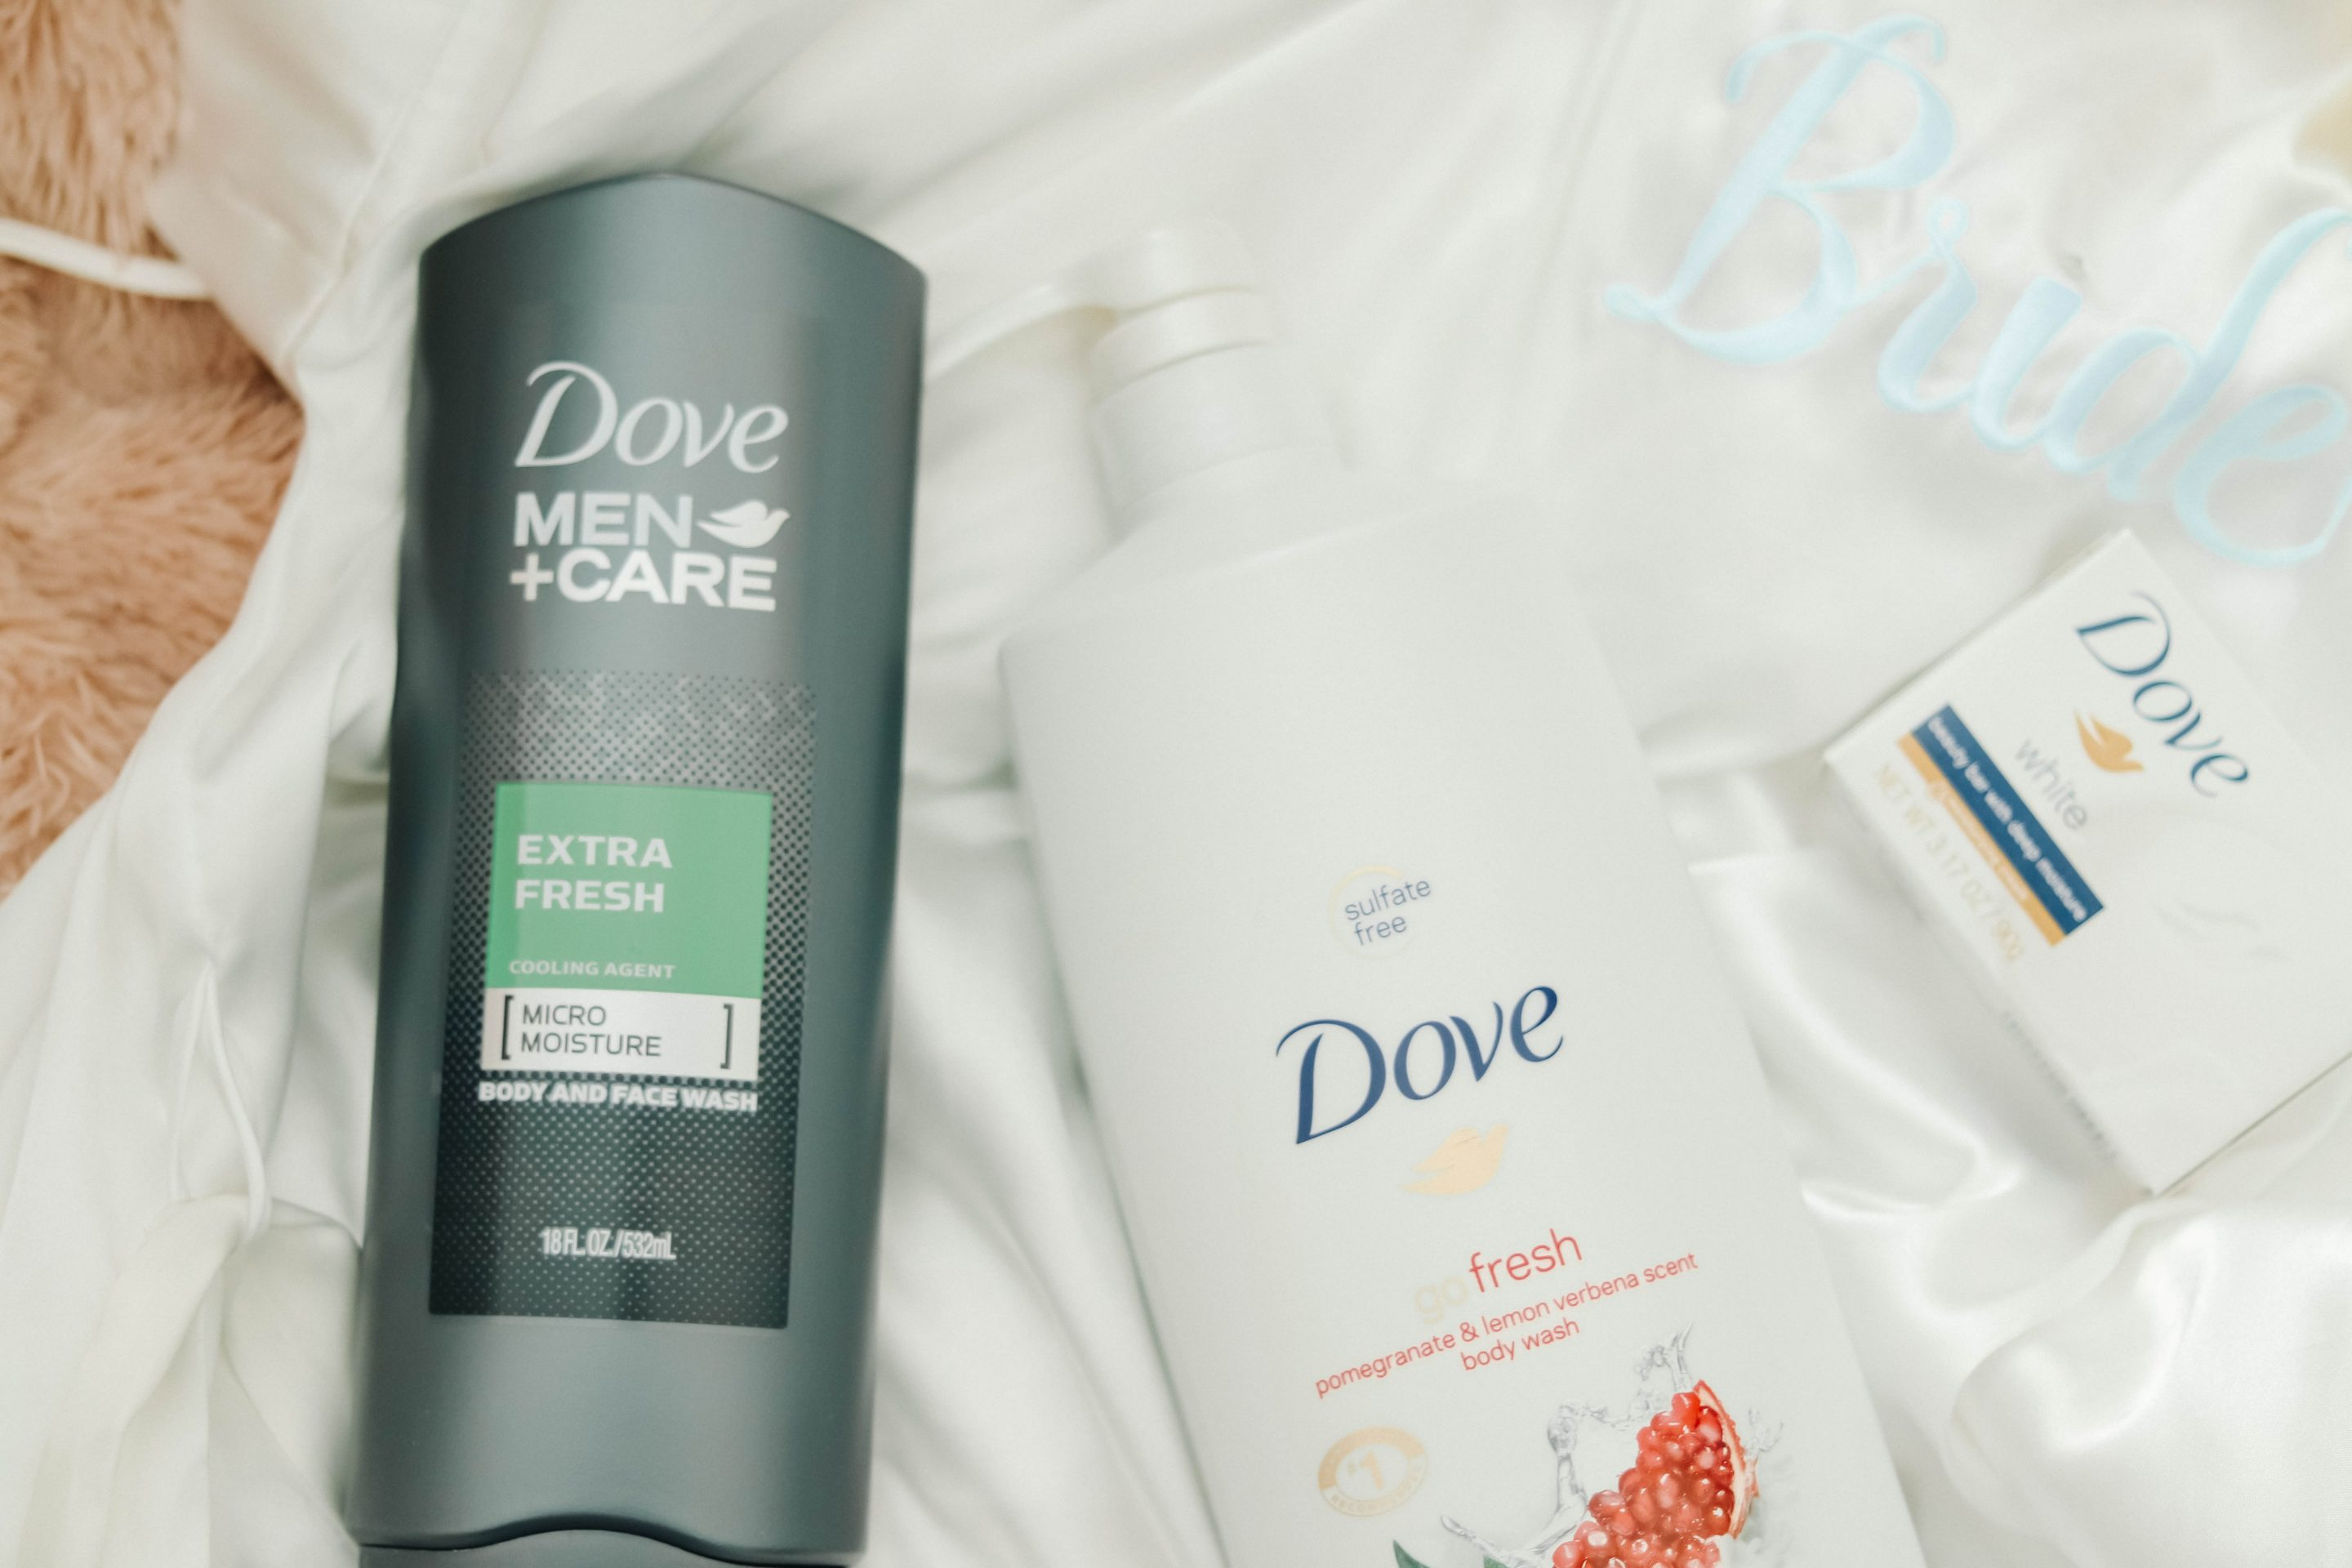 dove beauty products